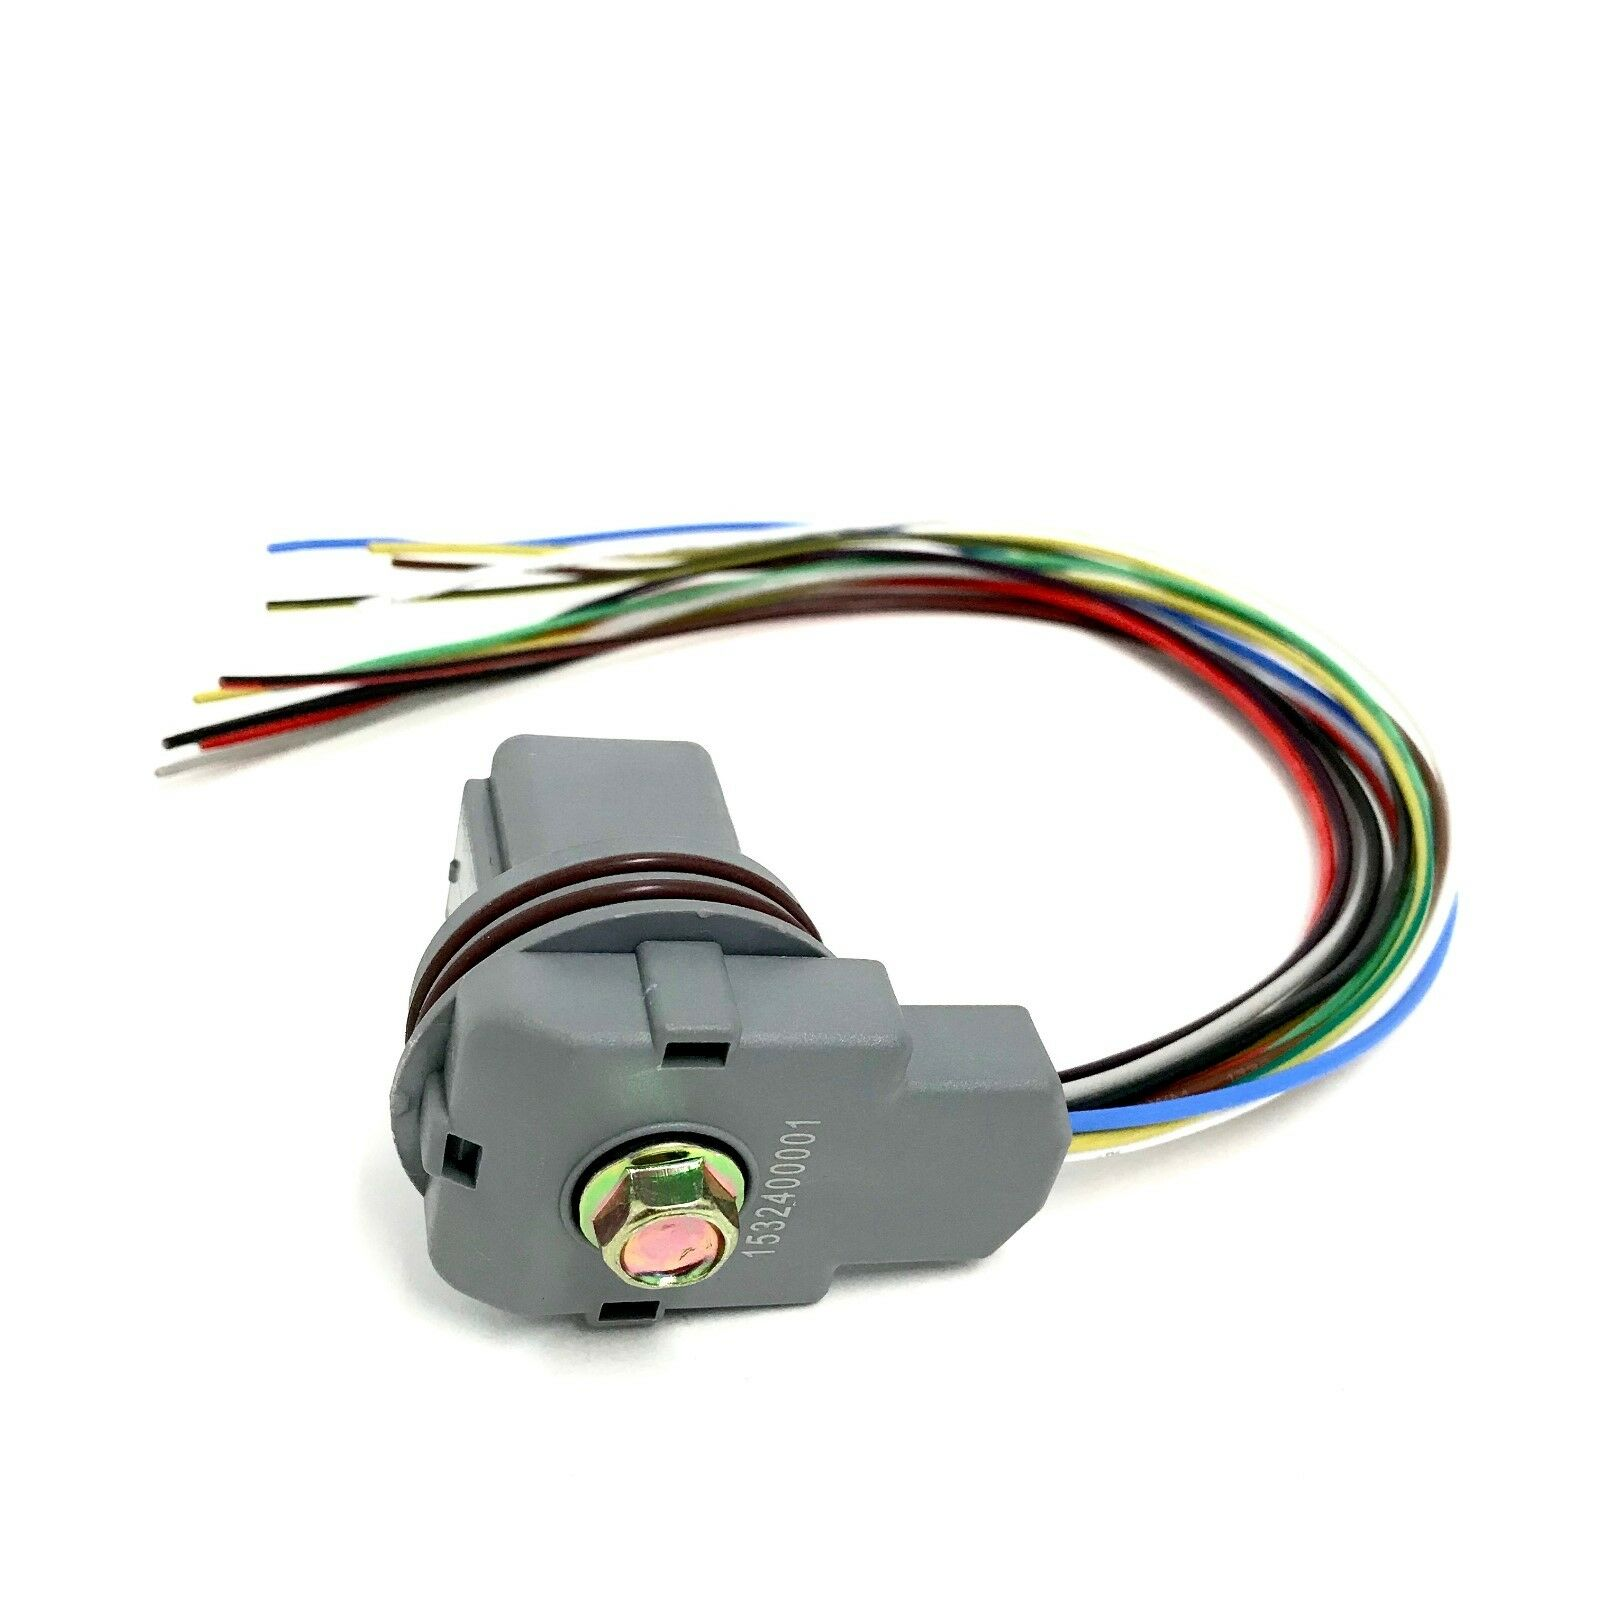 hight resolution of 5r55w 5r55s transmission wiring harness pigtail repair kit 2002 and up fits ford for sale